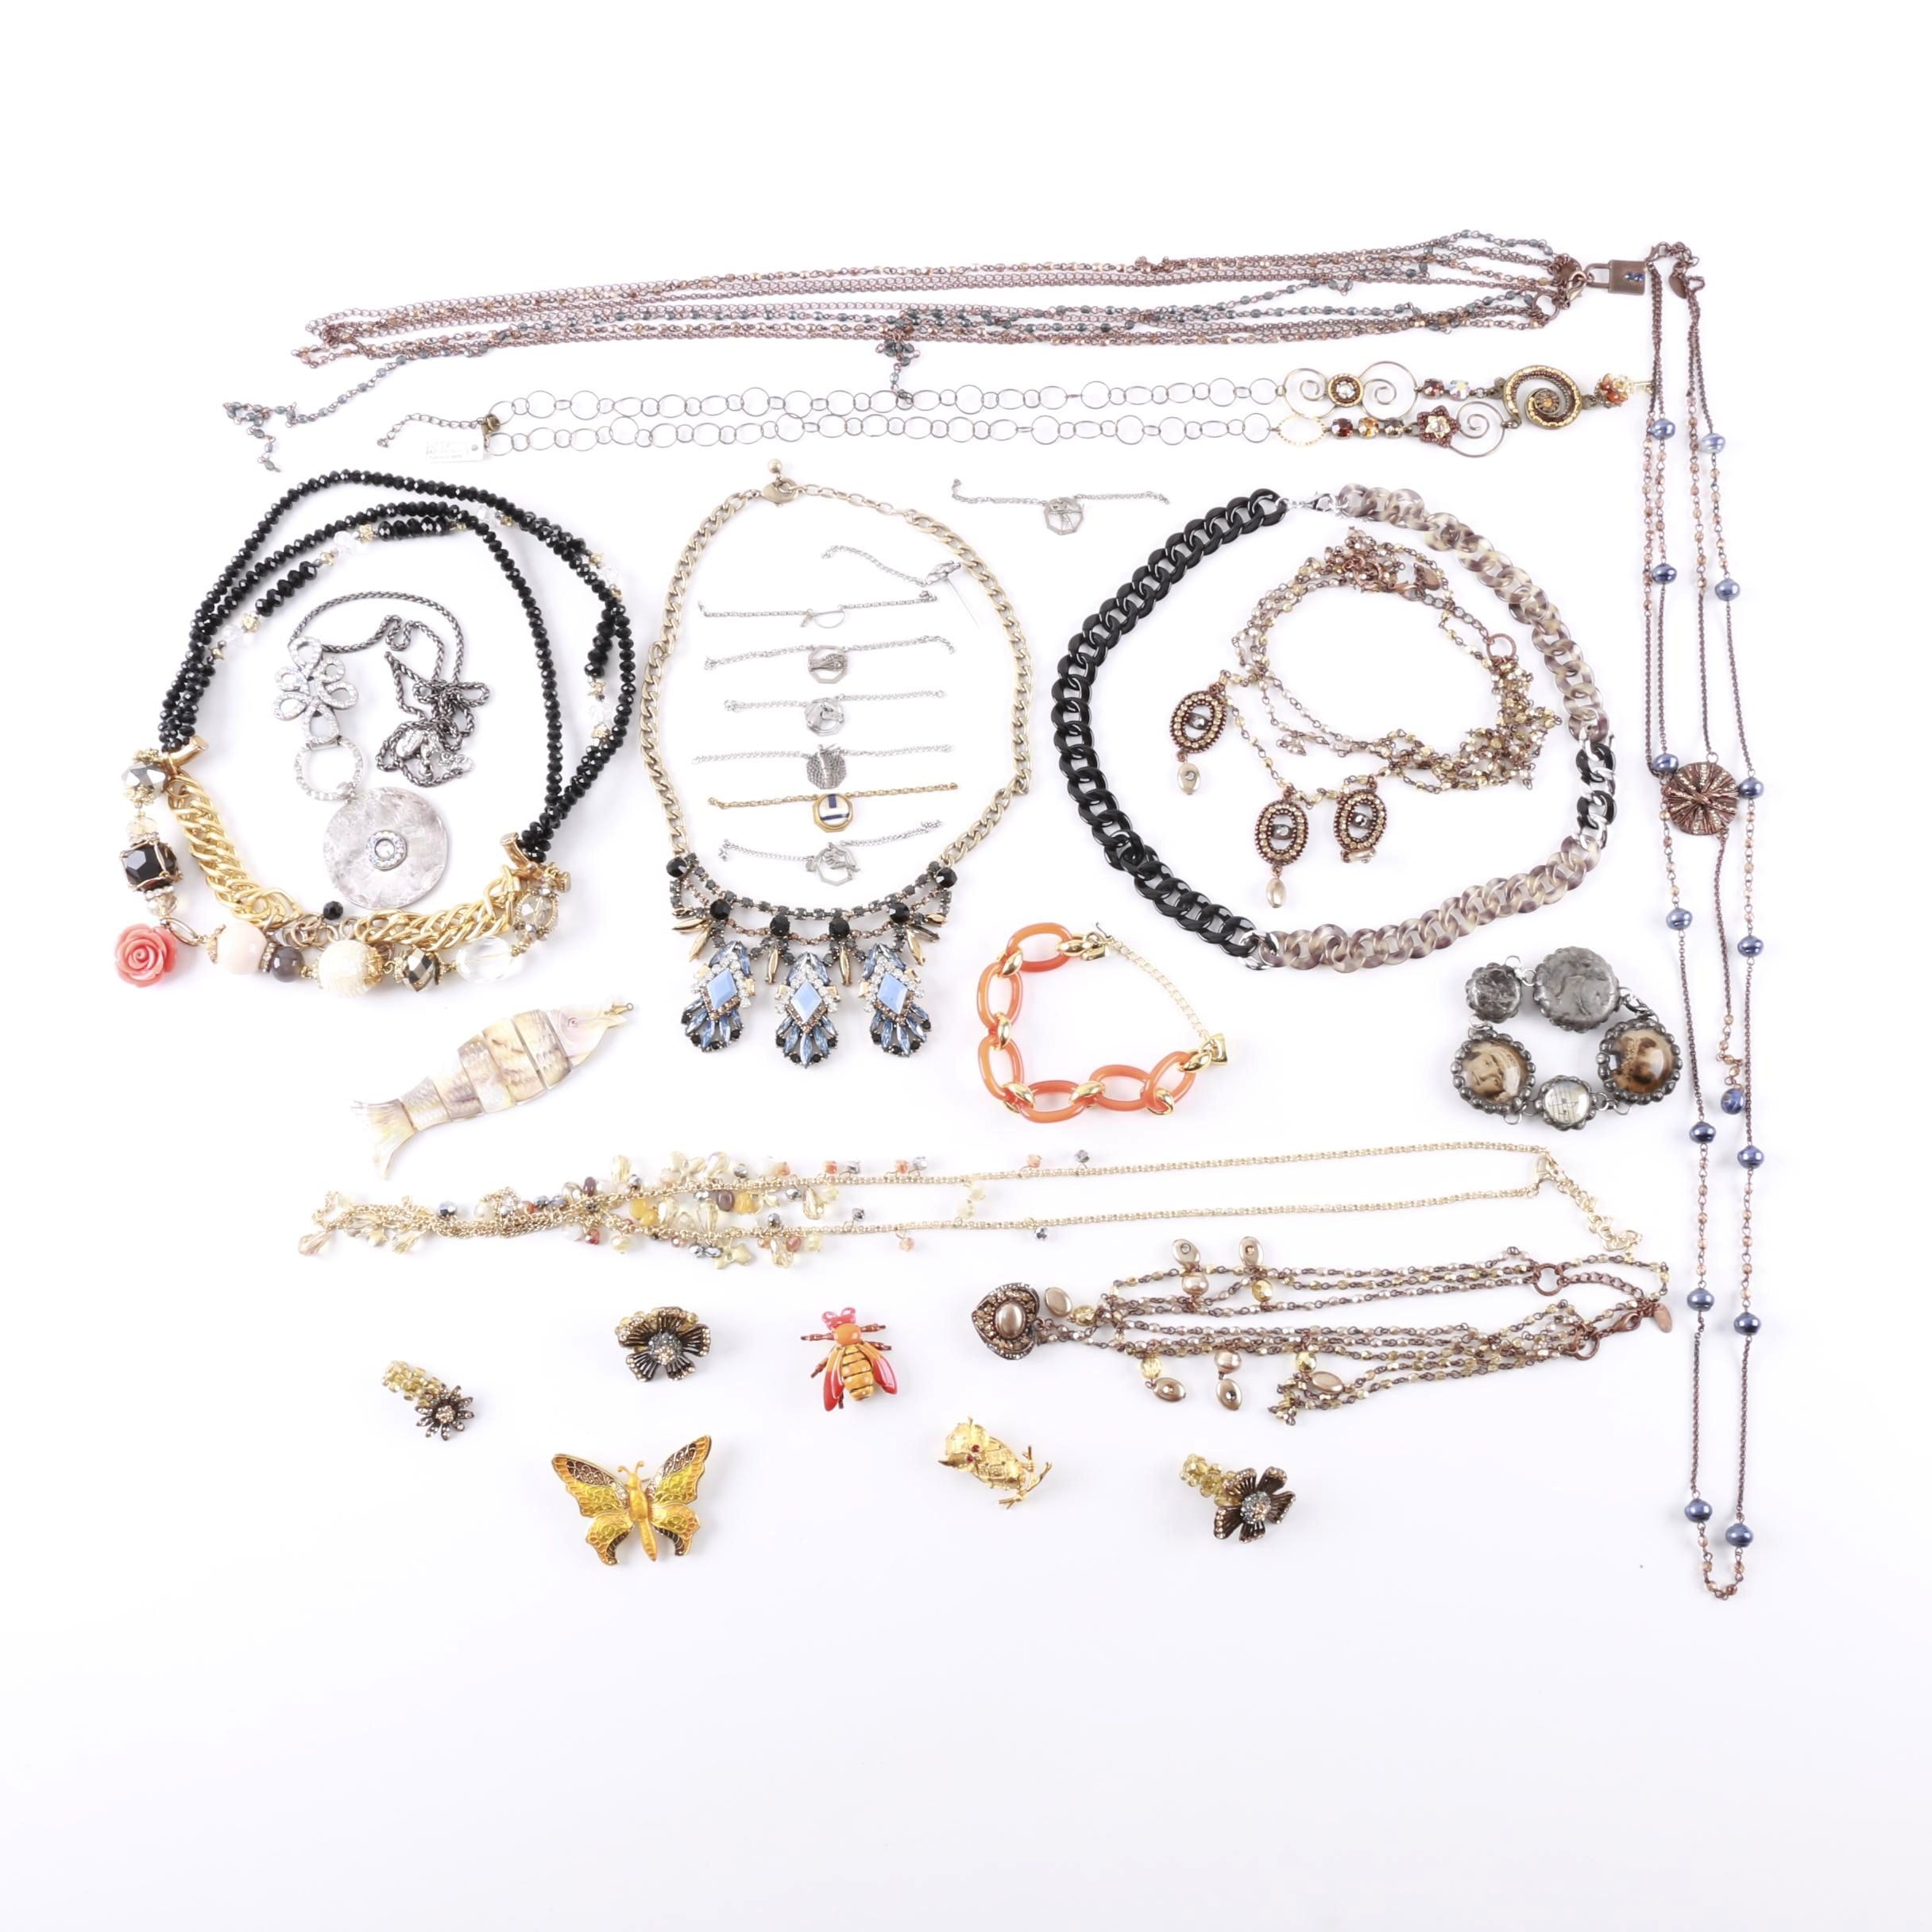 Assortment of Costume Jewelry Including Original by Robert